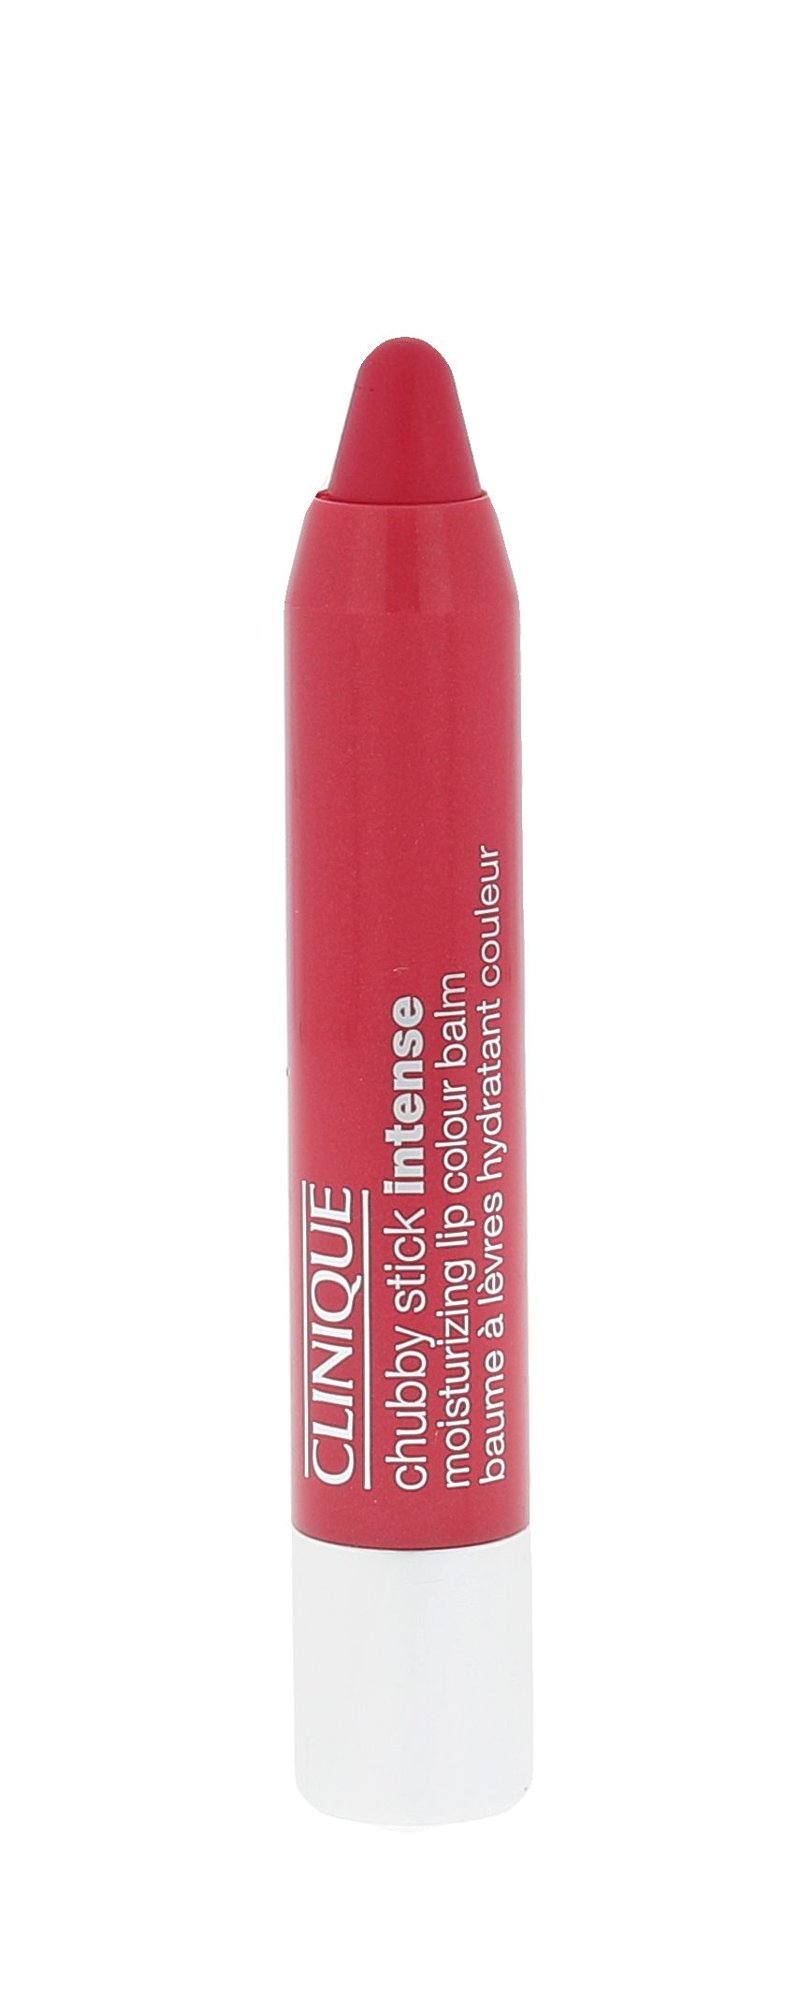 Clinique Chubby Stick Lipstick 3ml 05 Plushest Punch Intense